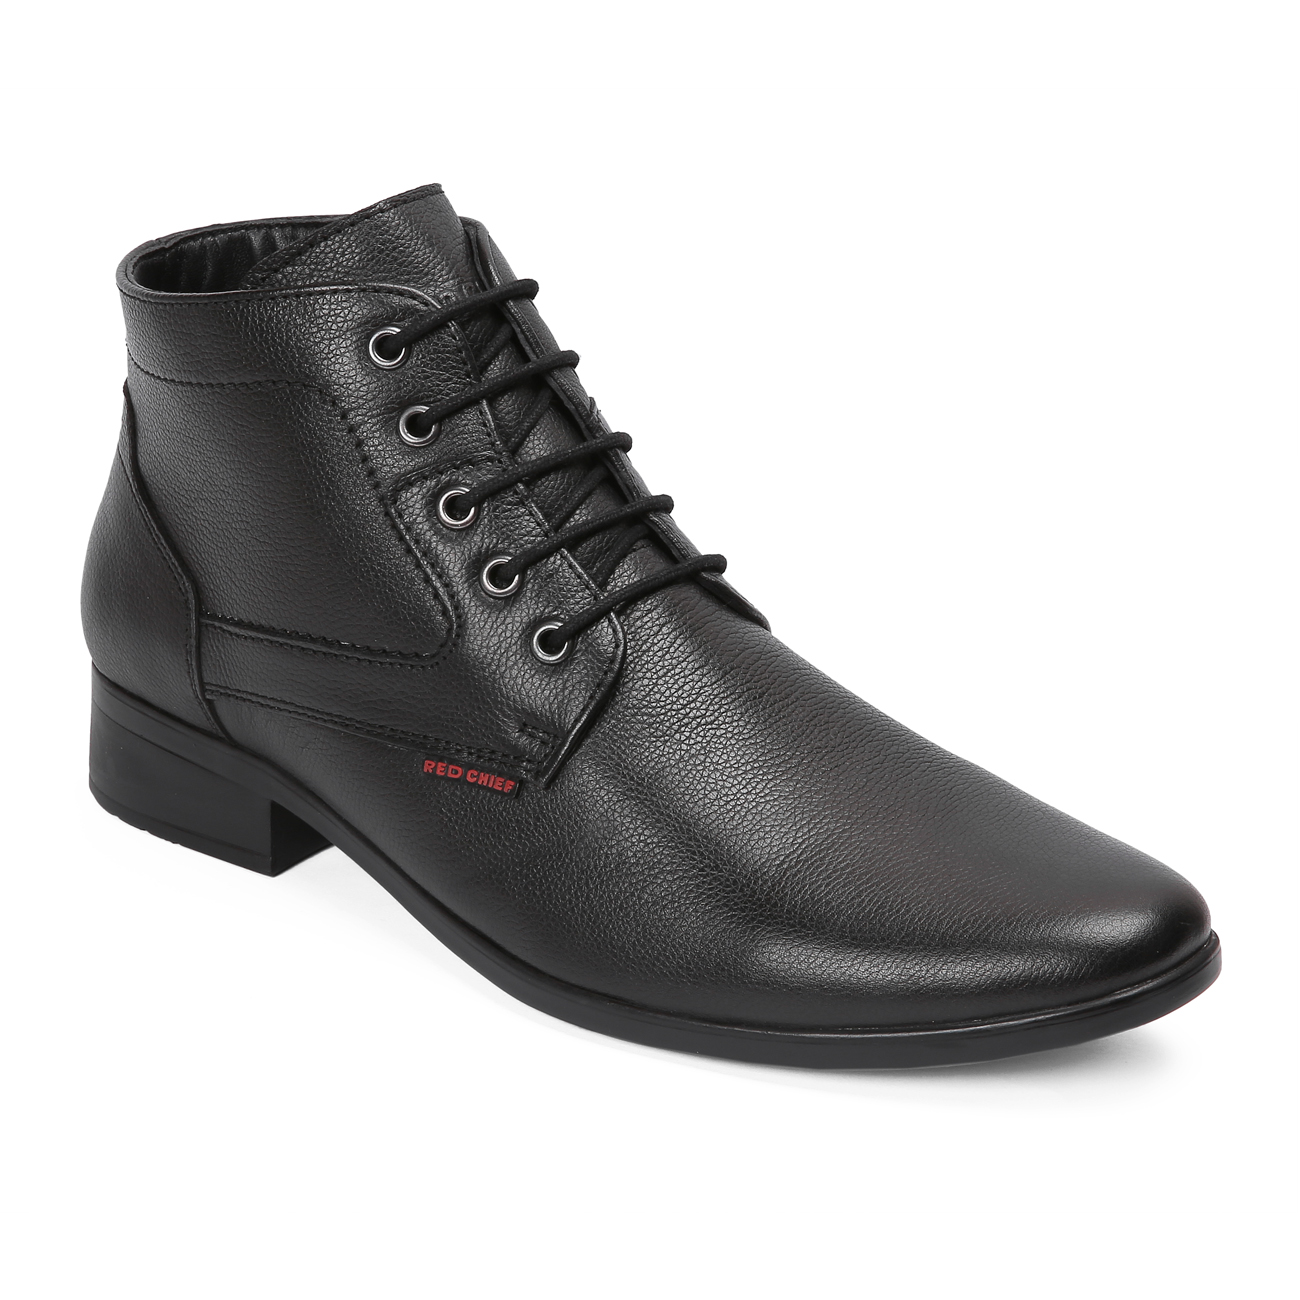 RED CHIEF | Black Boots